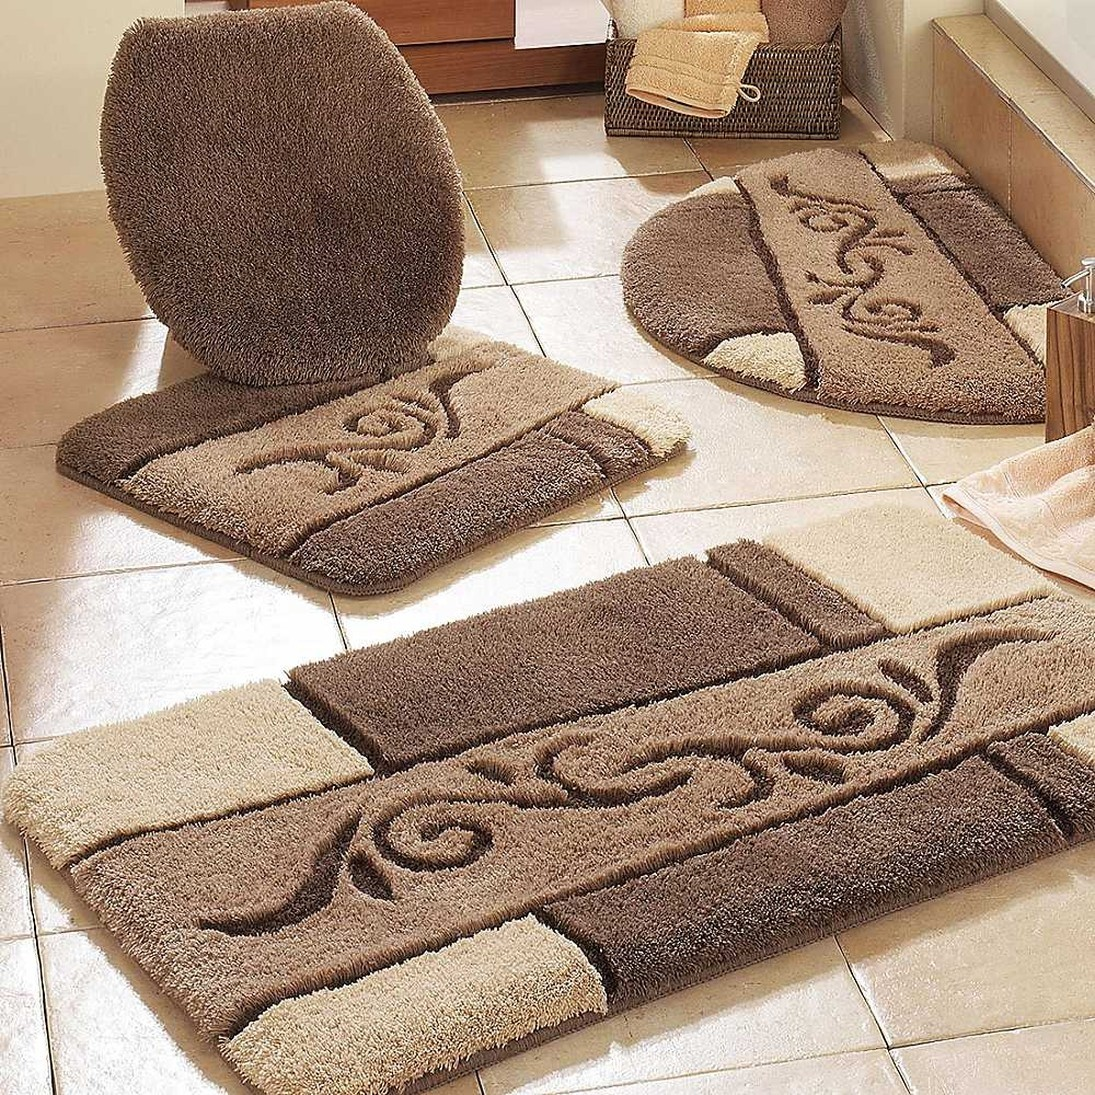 Ordinaire Designer Bath Rugs And Mats